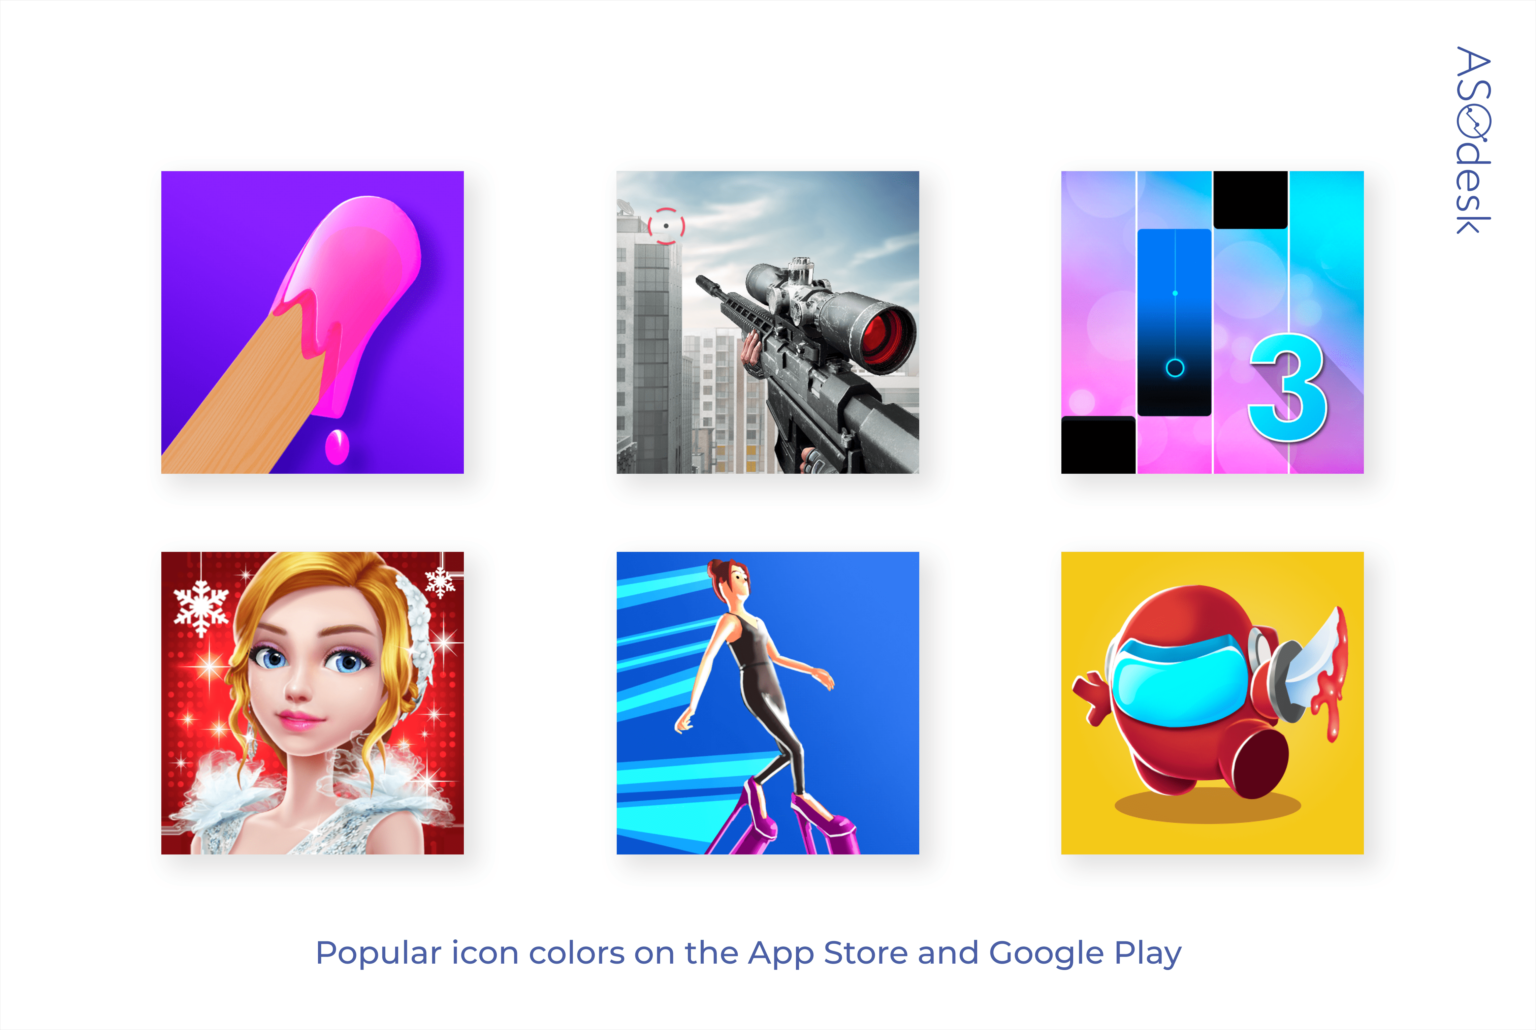 Gaming app page visual optimization trends of 2021